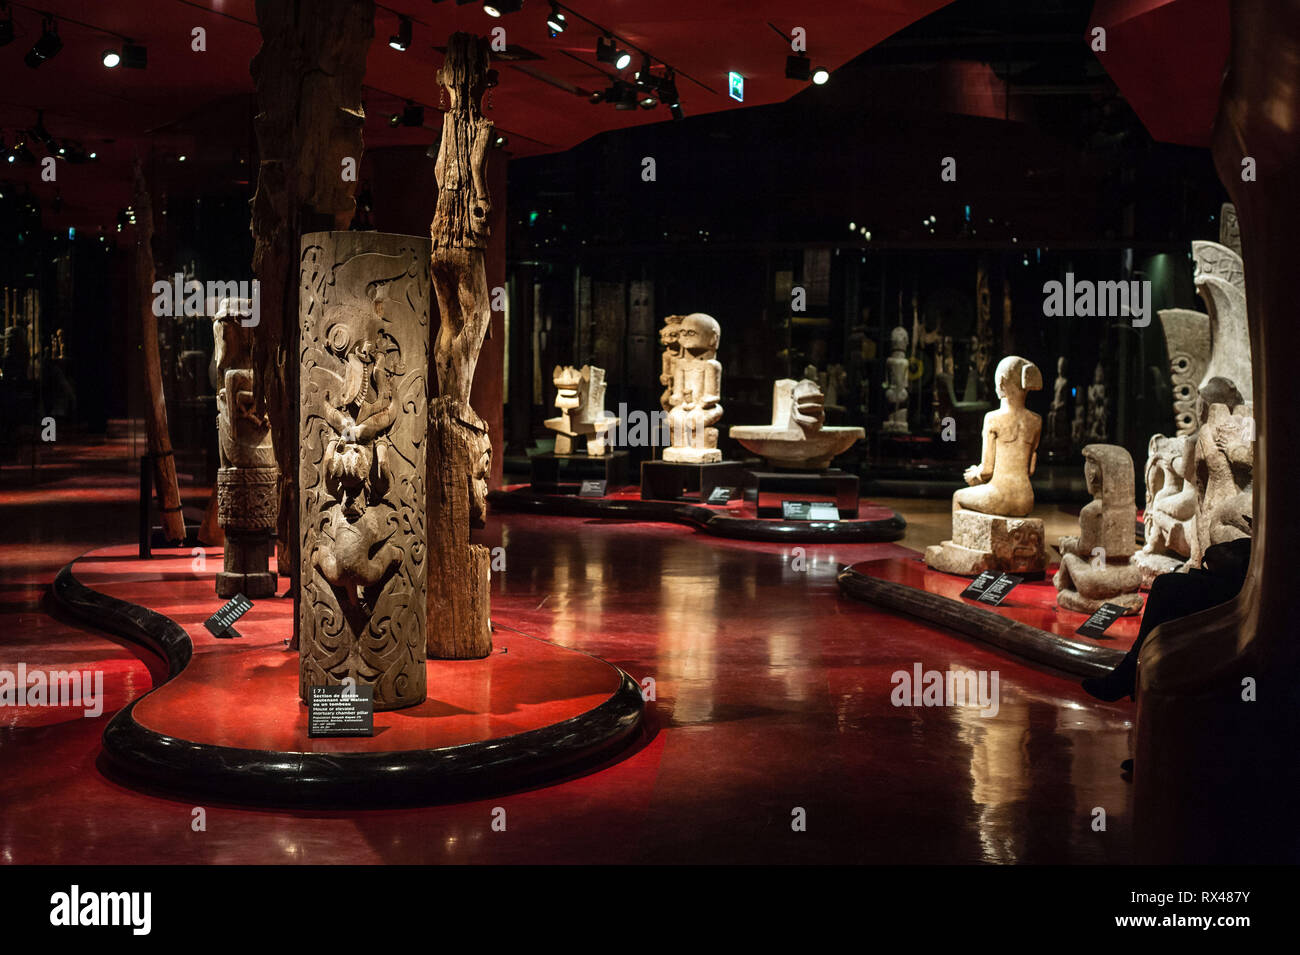 Paris (France): Musee des arts premiers du Quai Branly, museum featuring the indigenous art and cultures of Africa, Asia, Oceania, and the Americas. - Stock Image